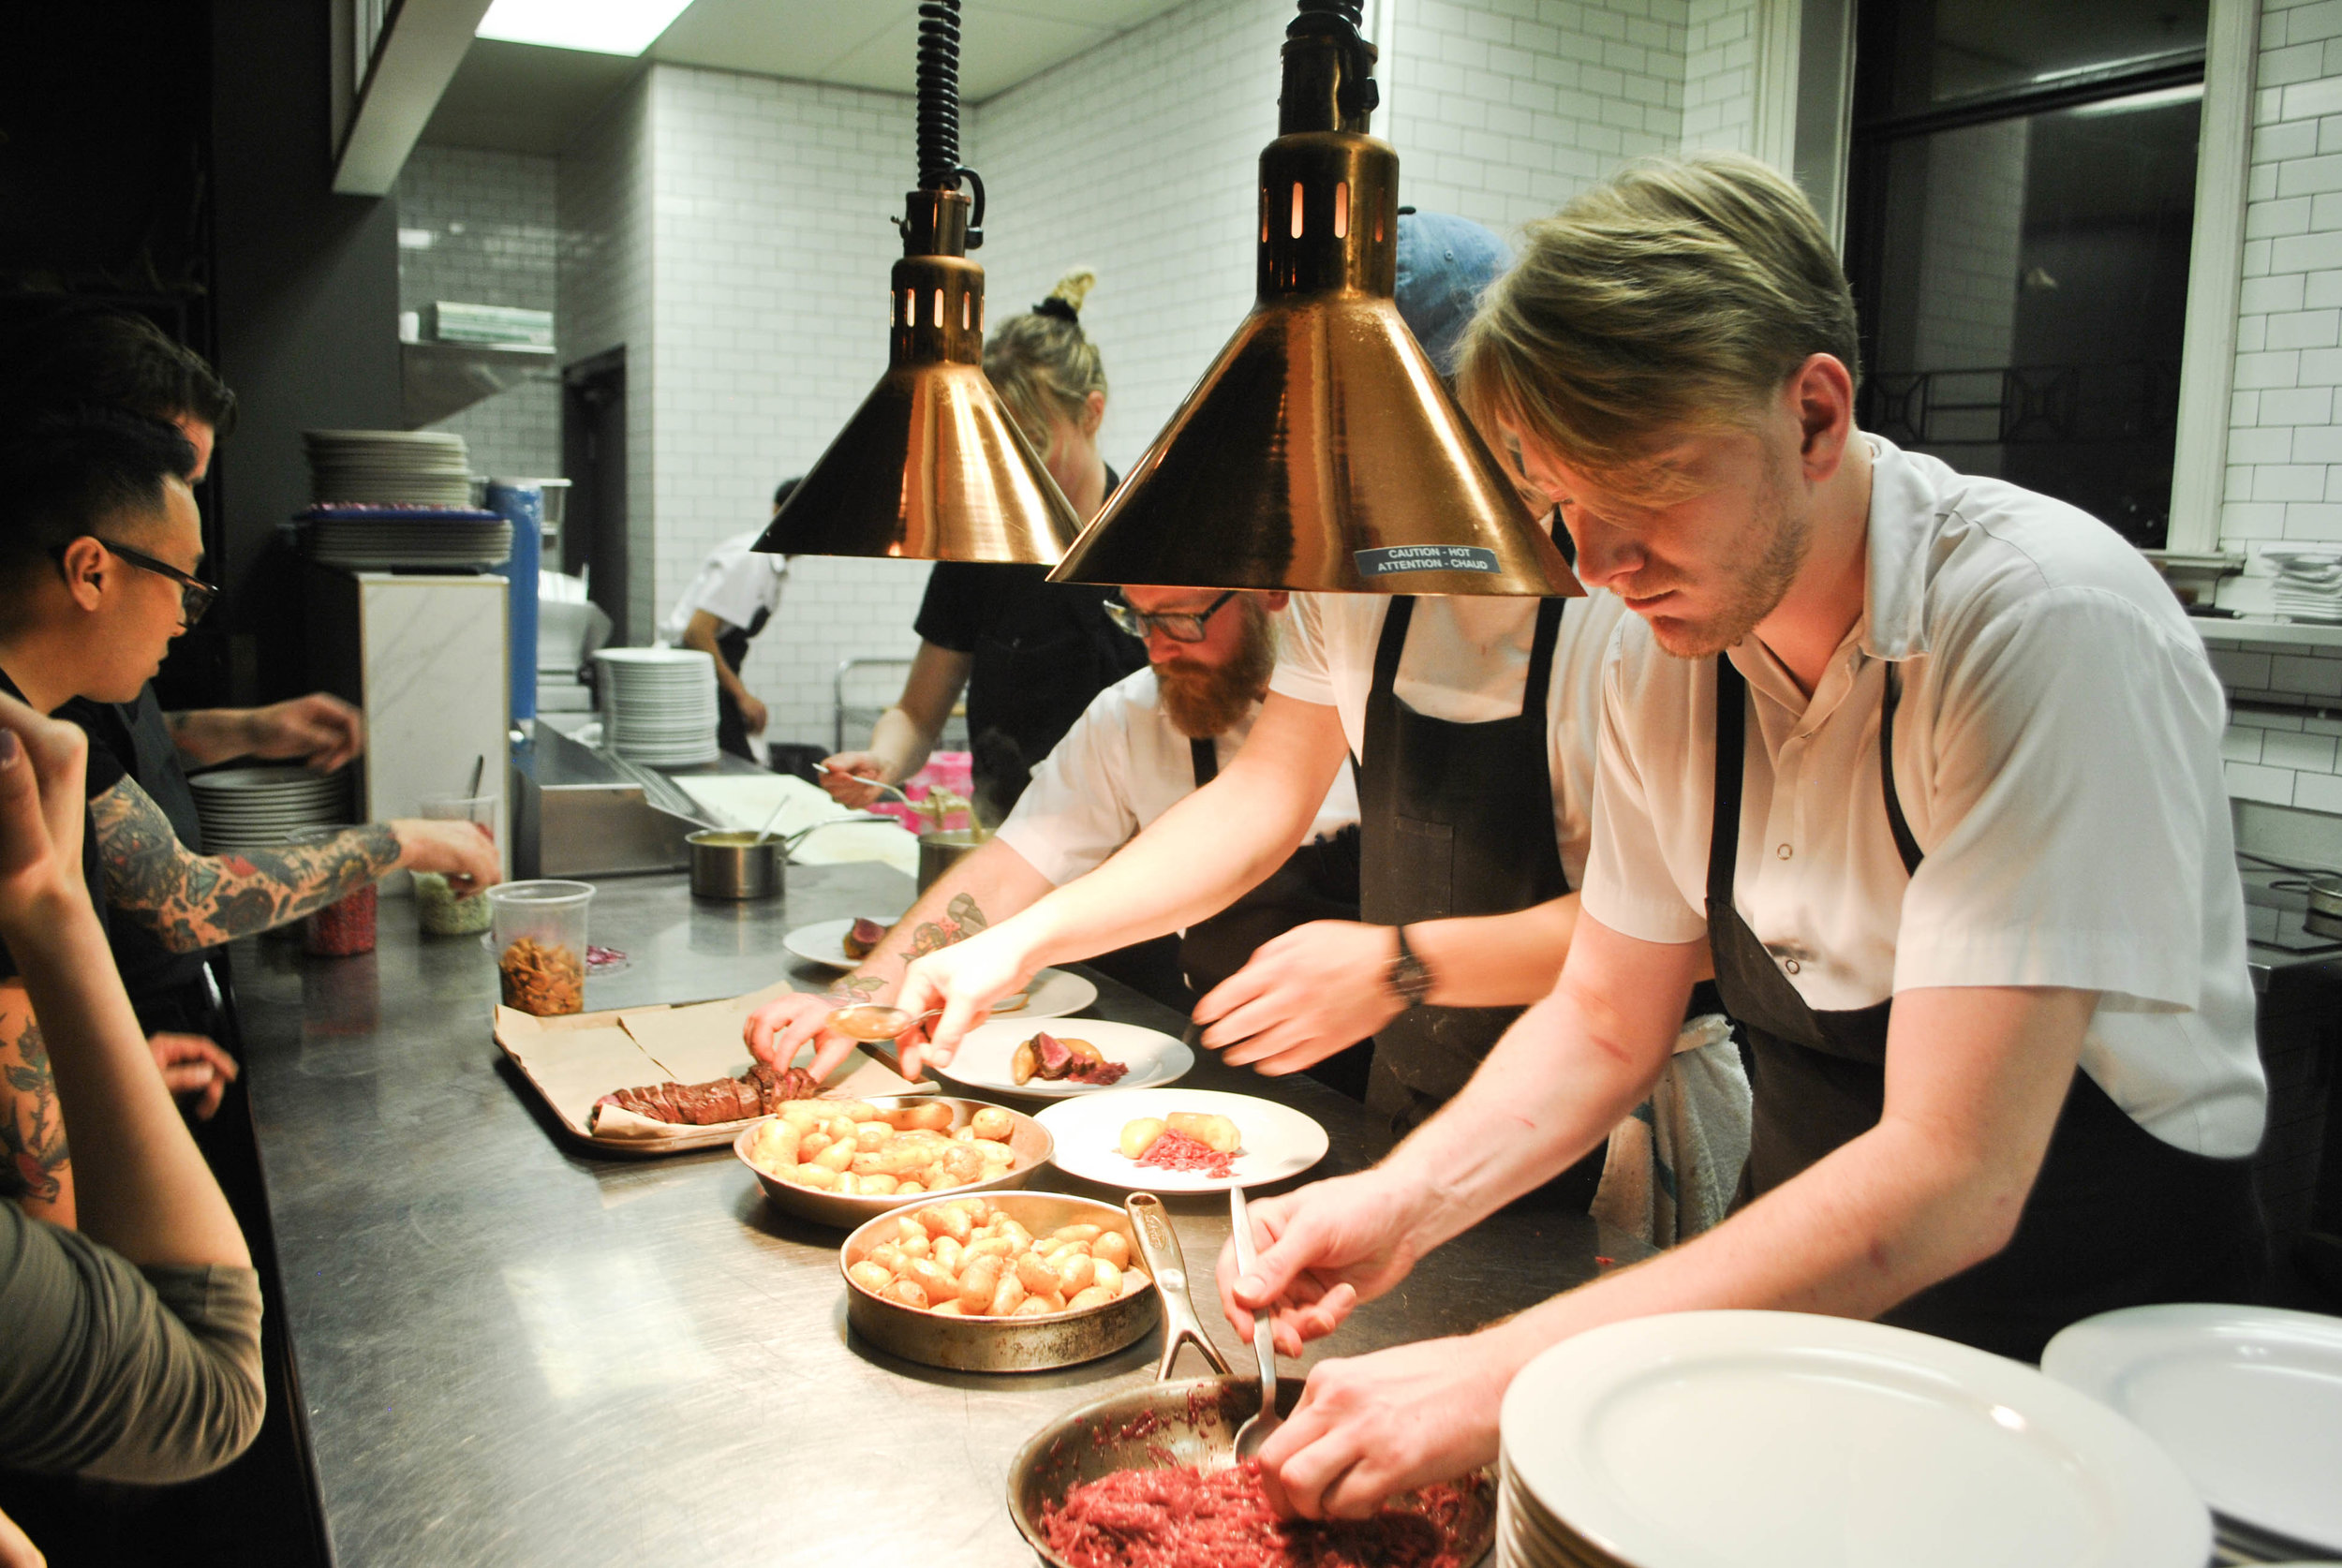 The Ayden crew plating The Hollows' 4th course dish